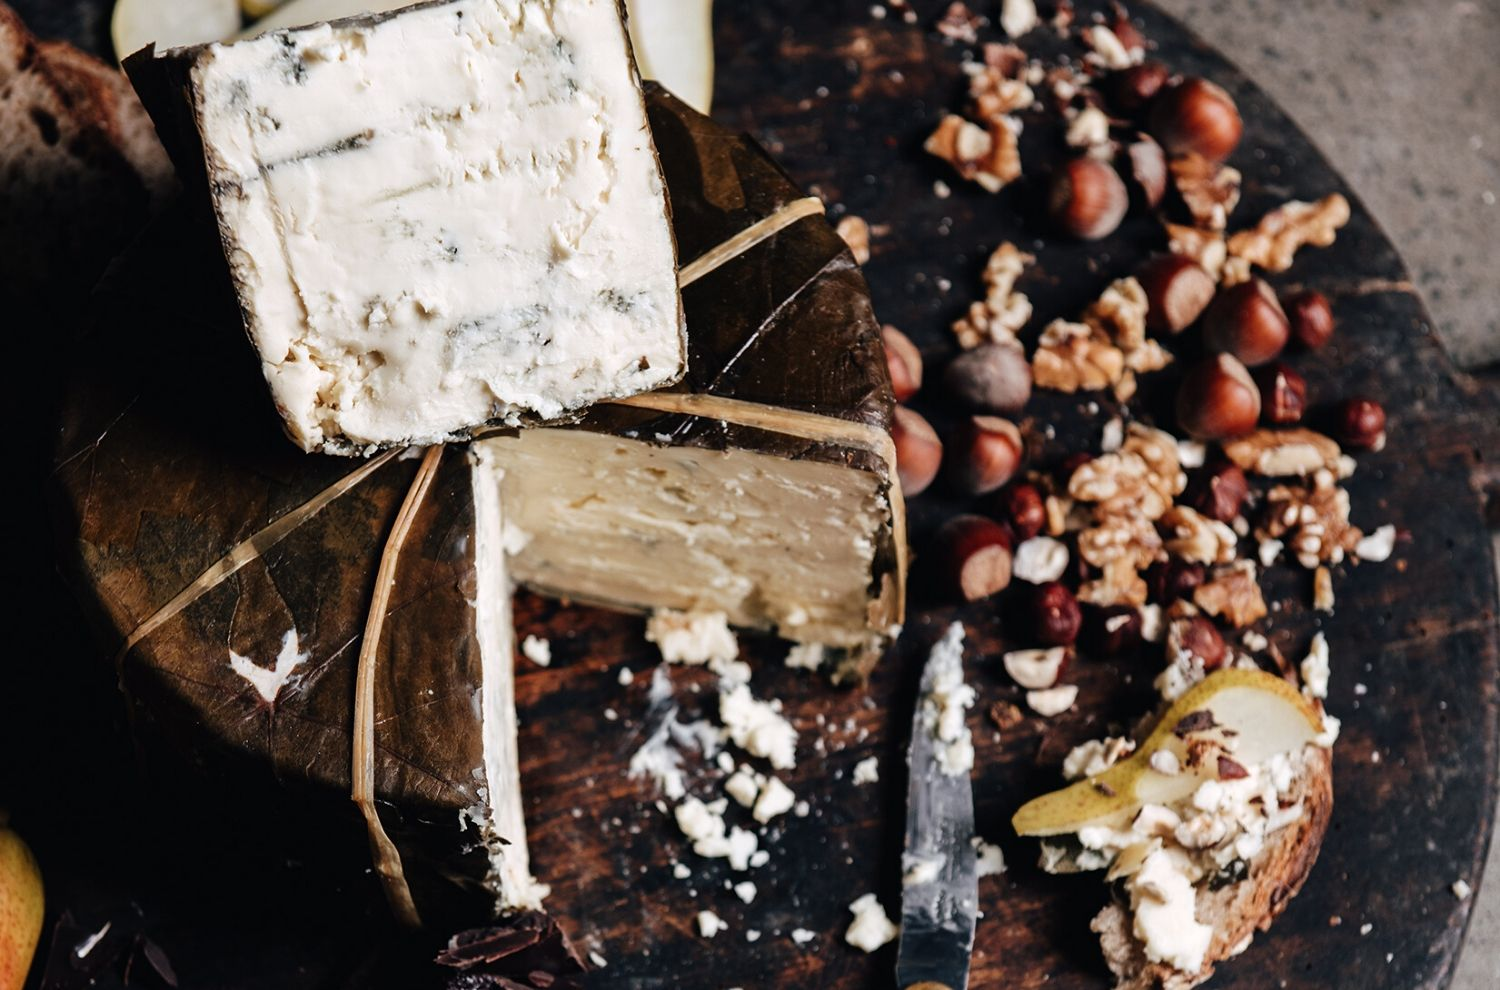 Rogue River Blue Cheese on cheese board